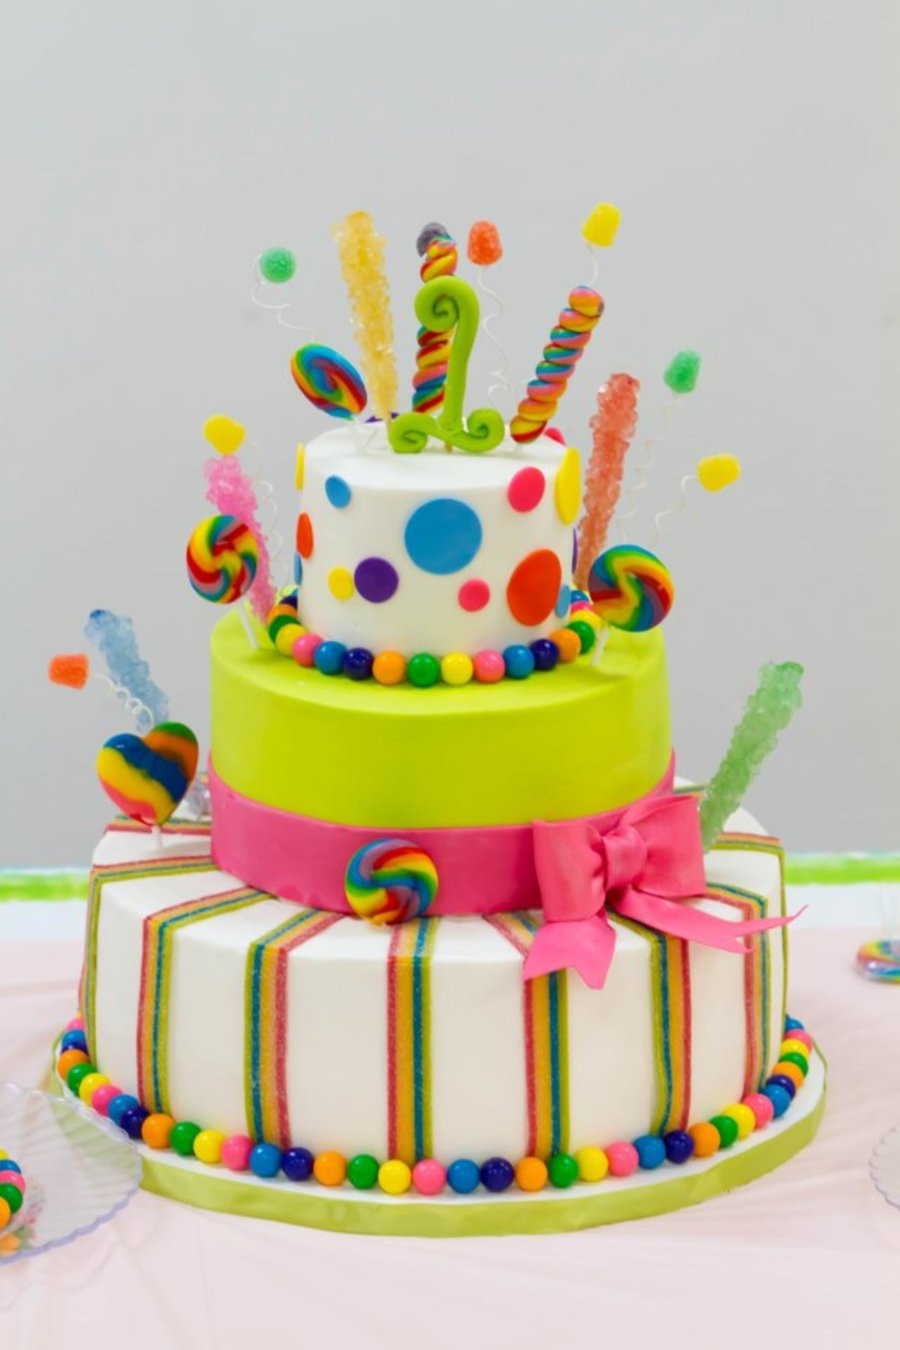 Best ideas about Birthday Cake Gum . Save or Pin Candyland Celebration CakeCentral Now.